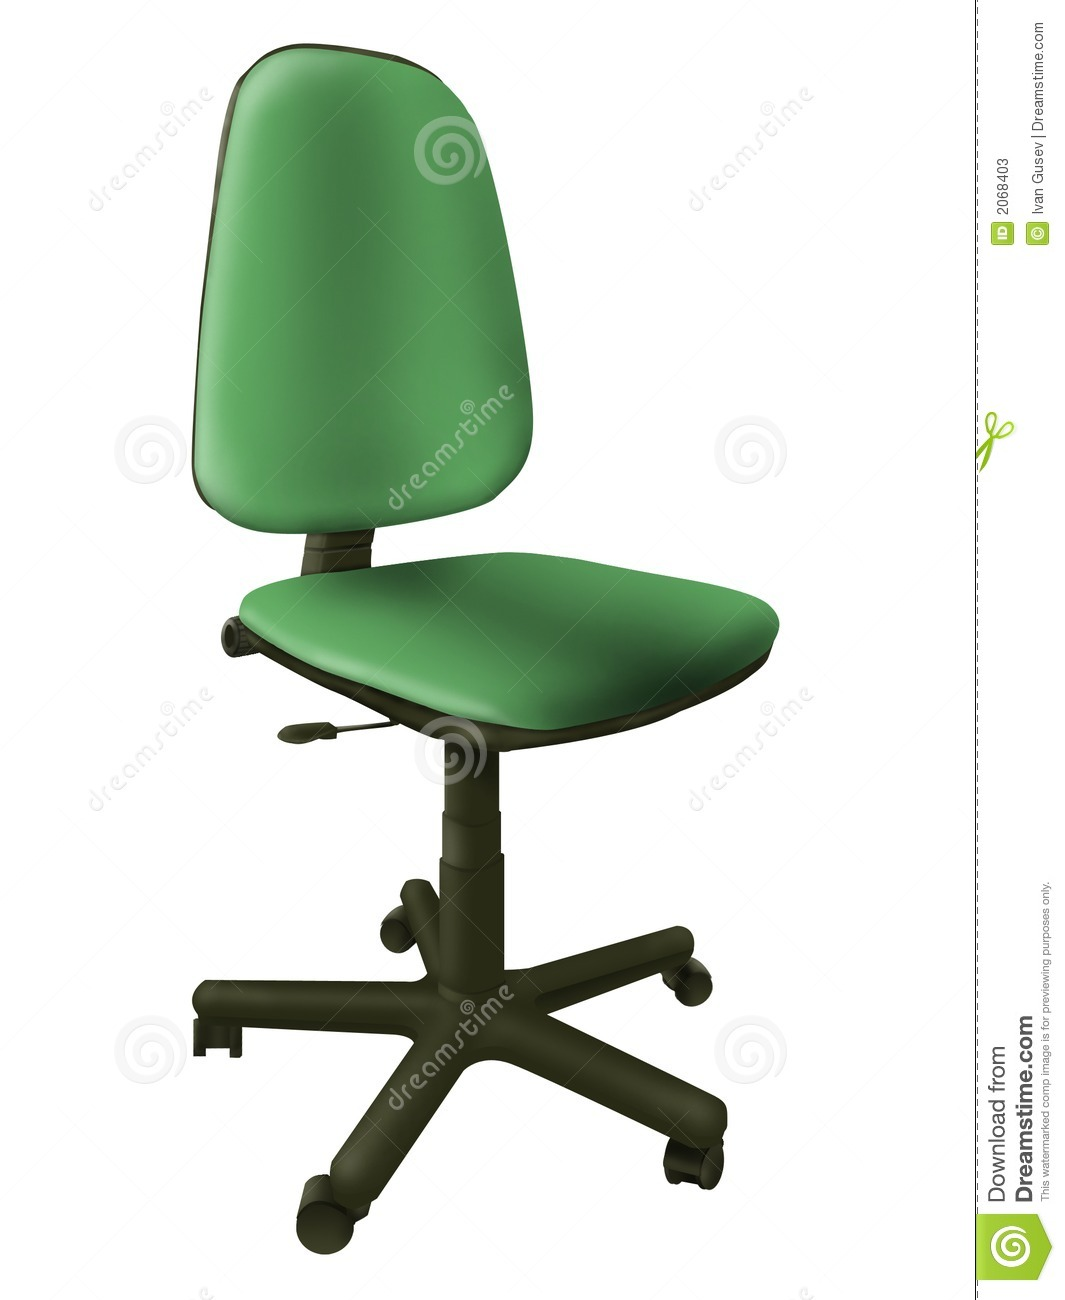 fice Green Chair Stock s Image